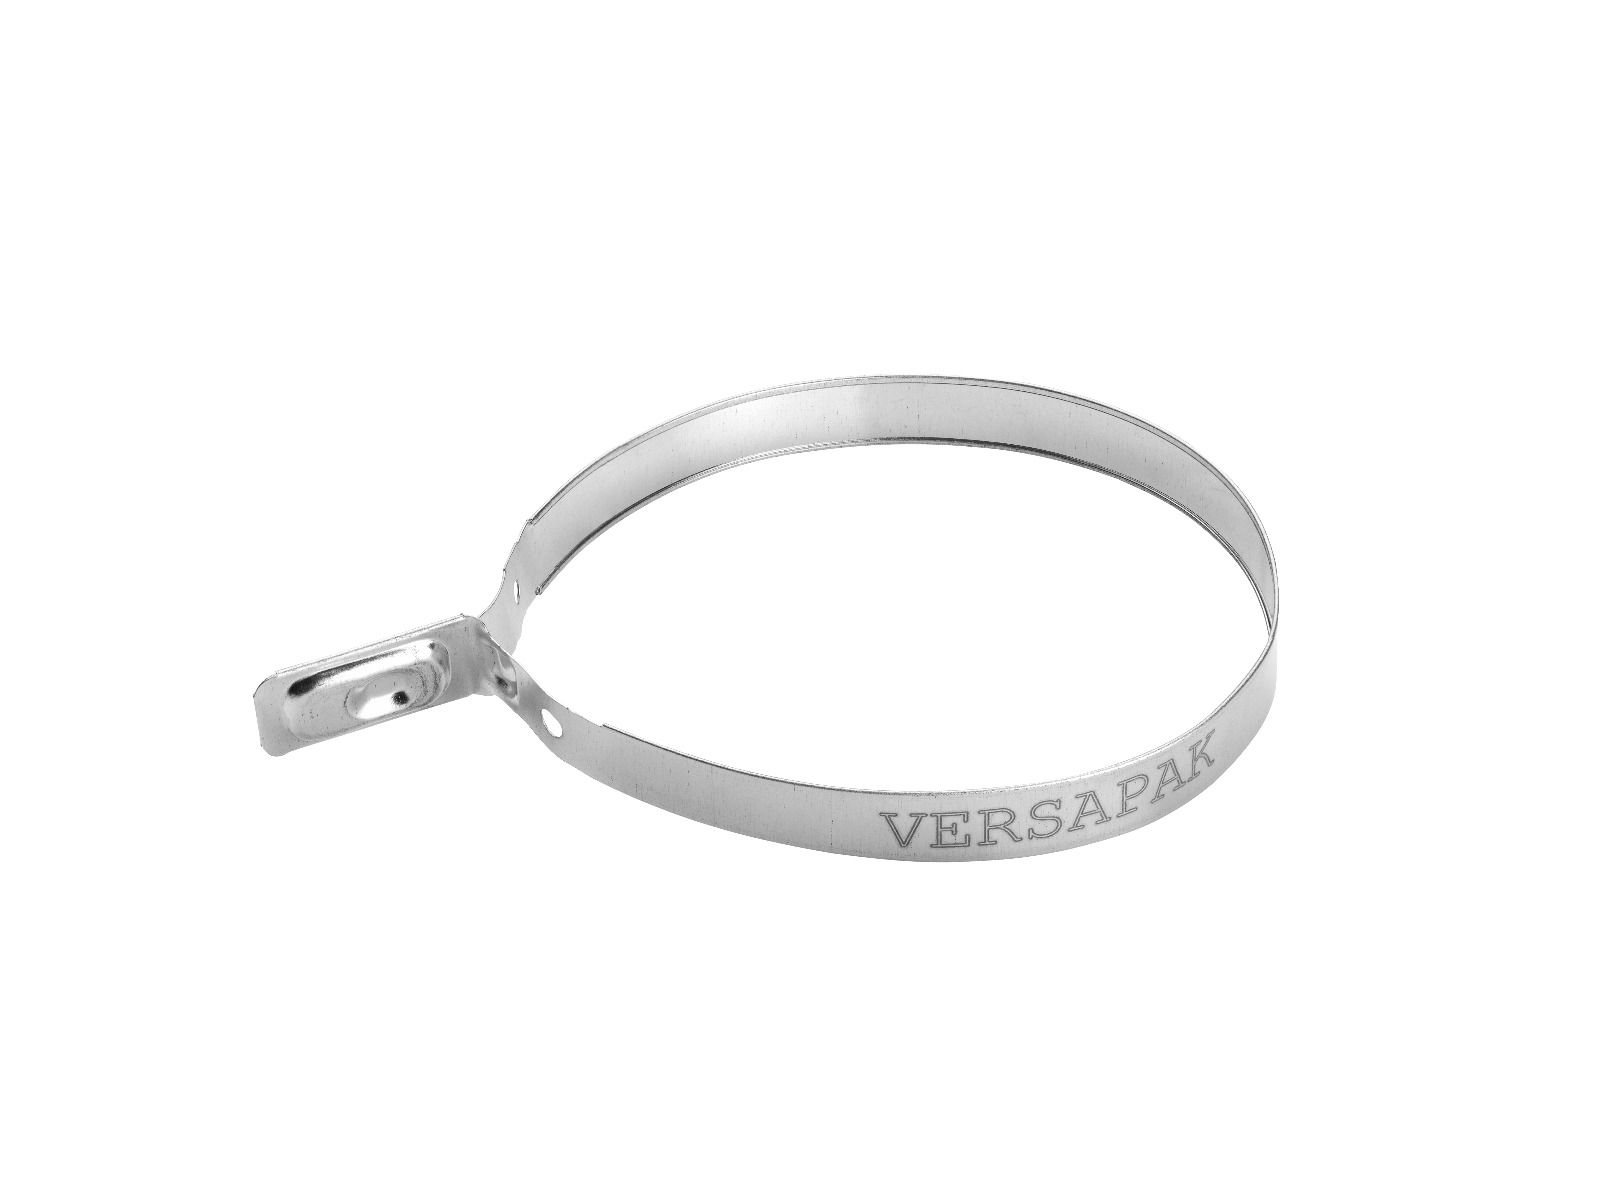 Heavy Duty Metal Security Seal - Fixed Length